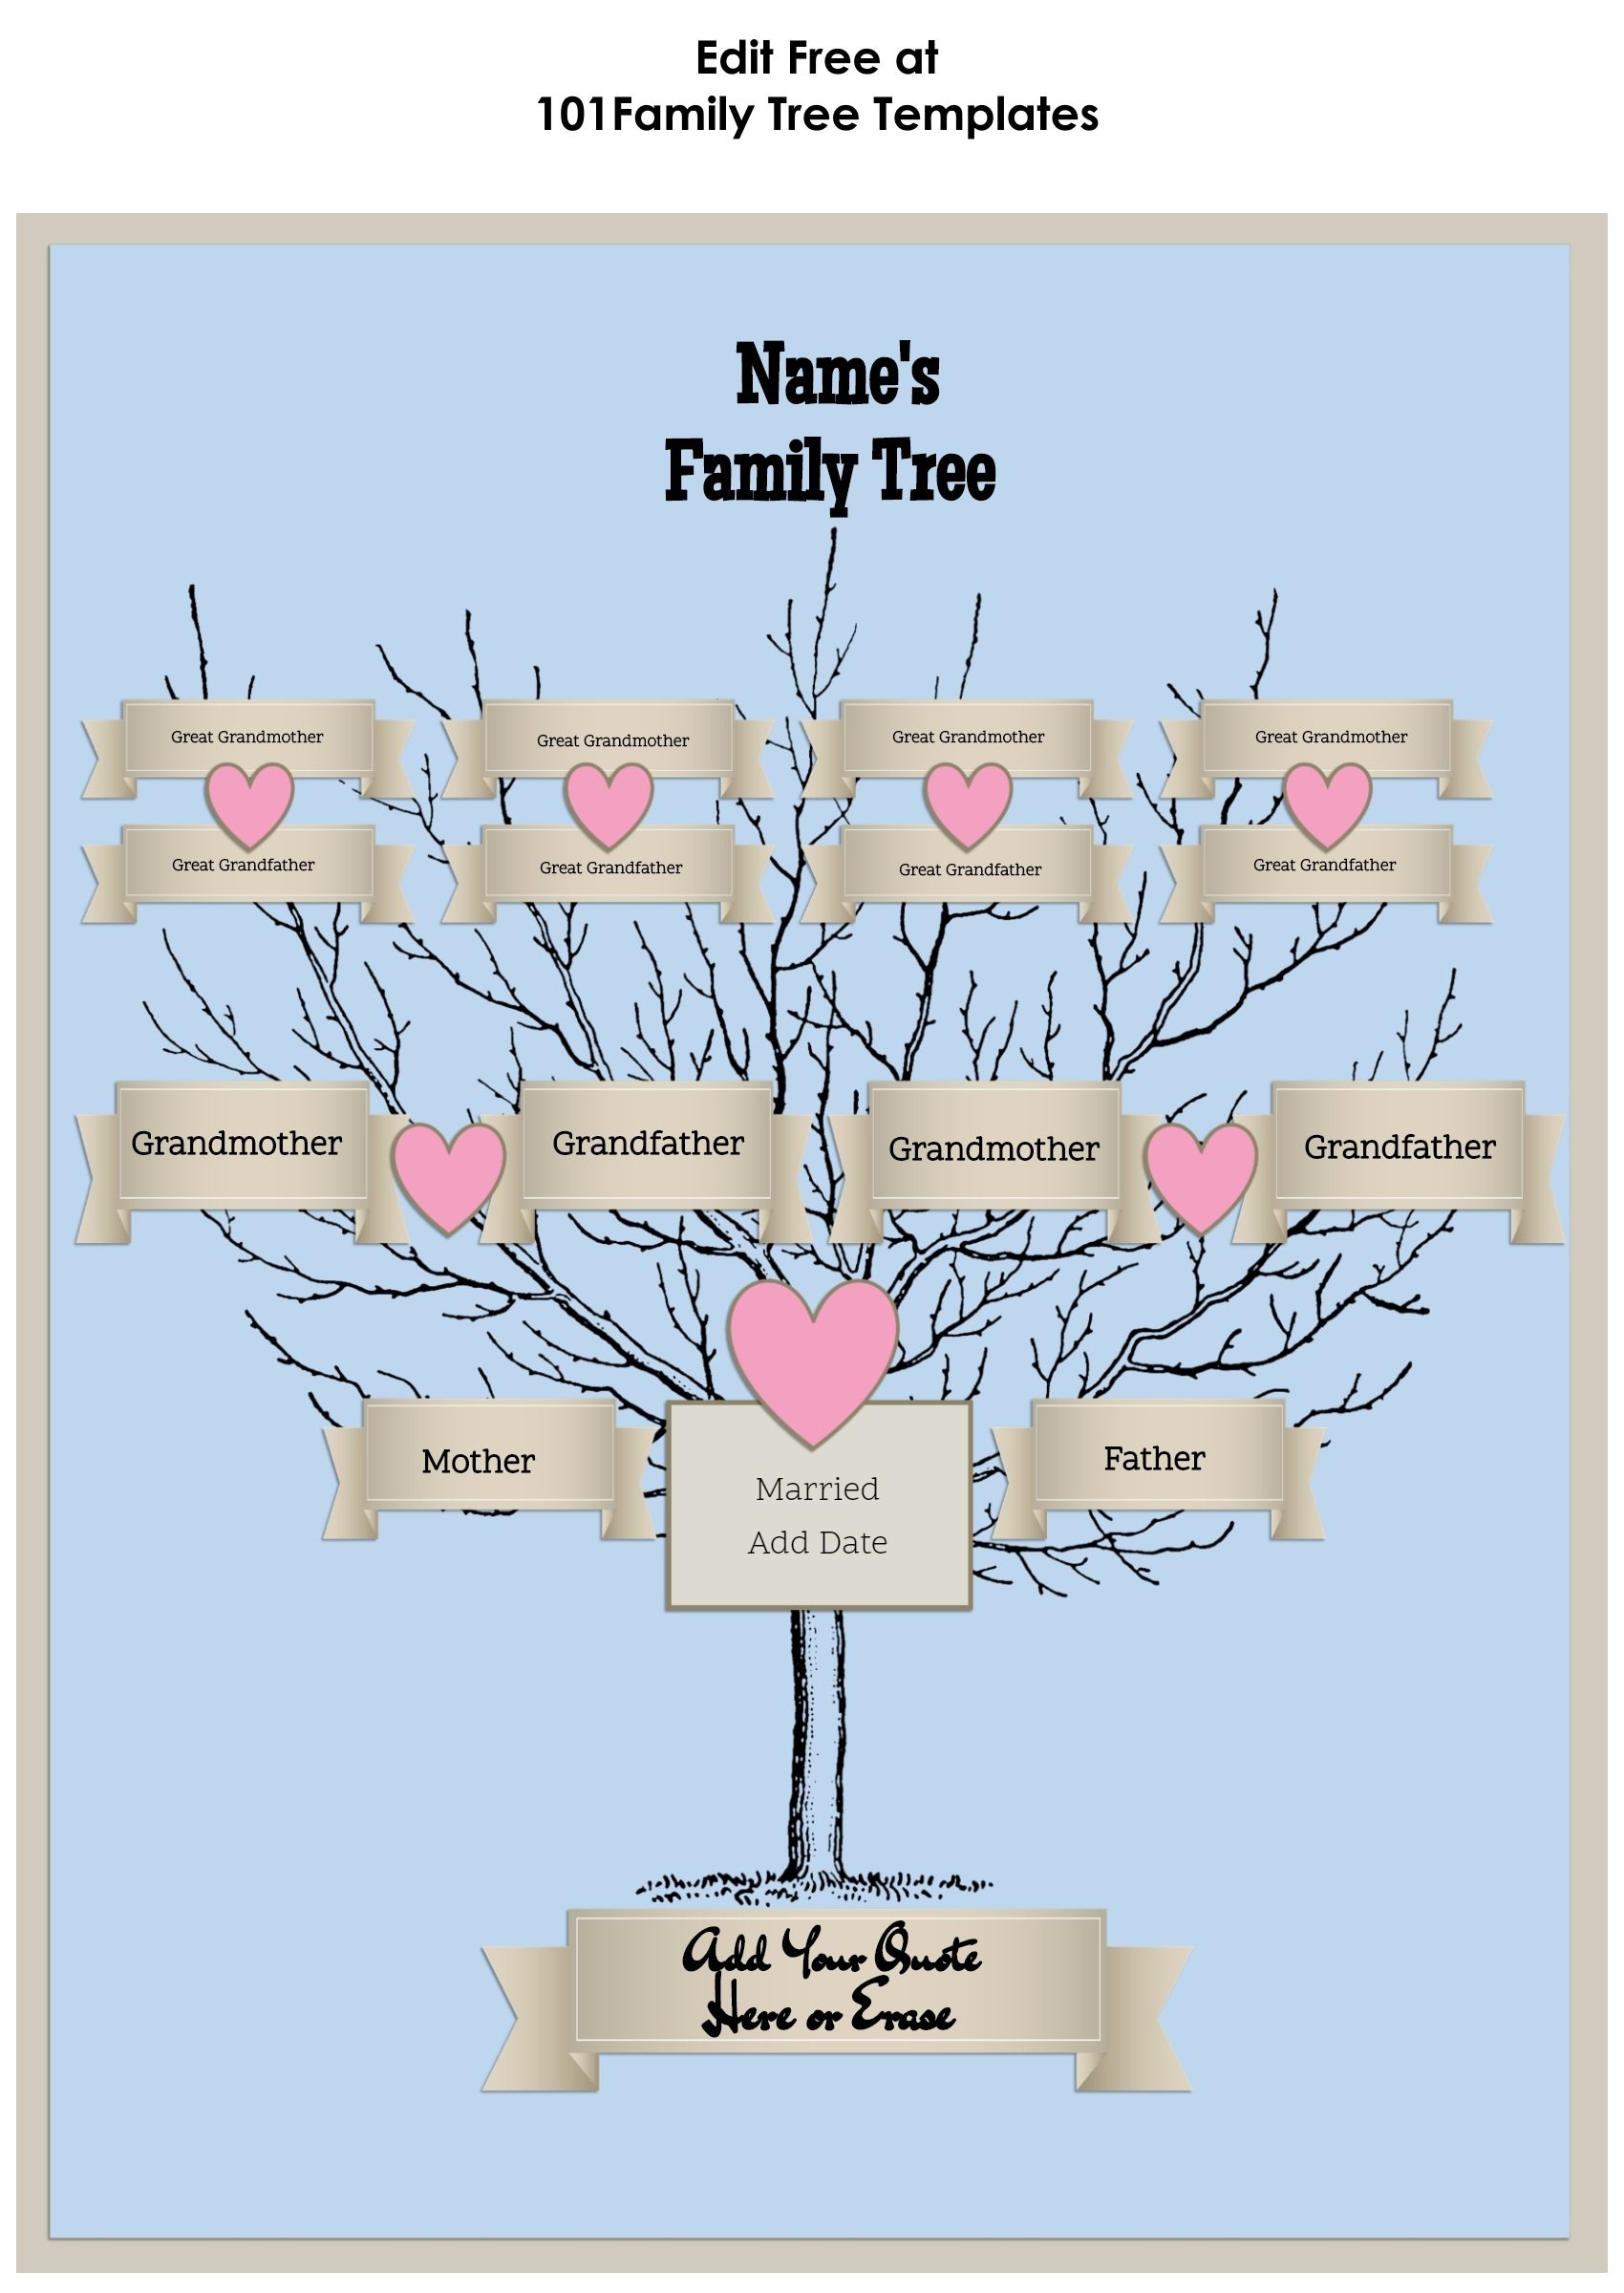 3 Generation Family Tree Generator   All Templates Are Free To Customize - Family Tree Maker Free Printable